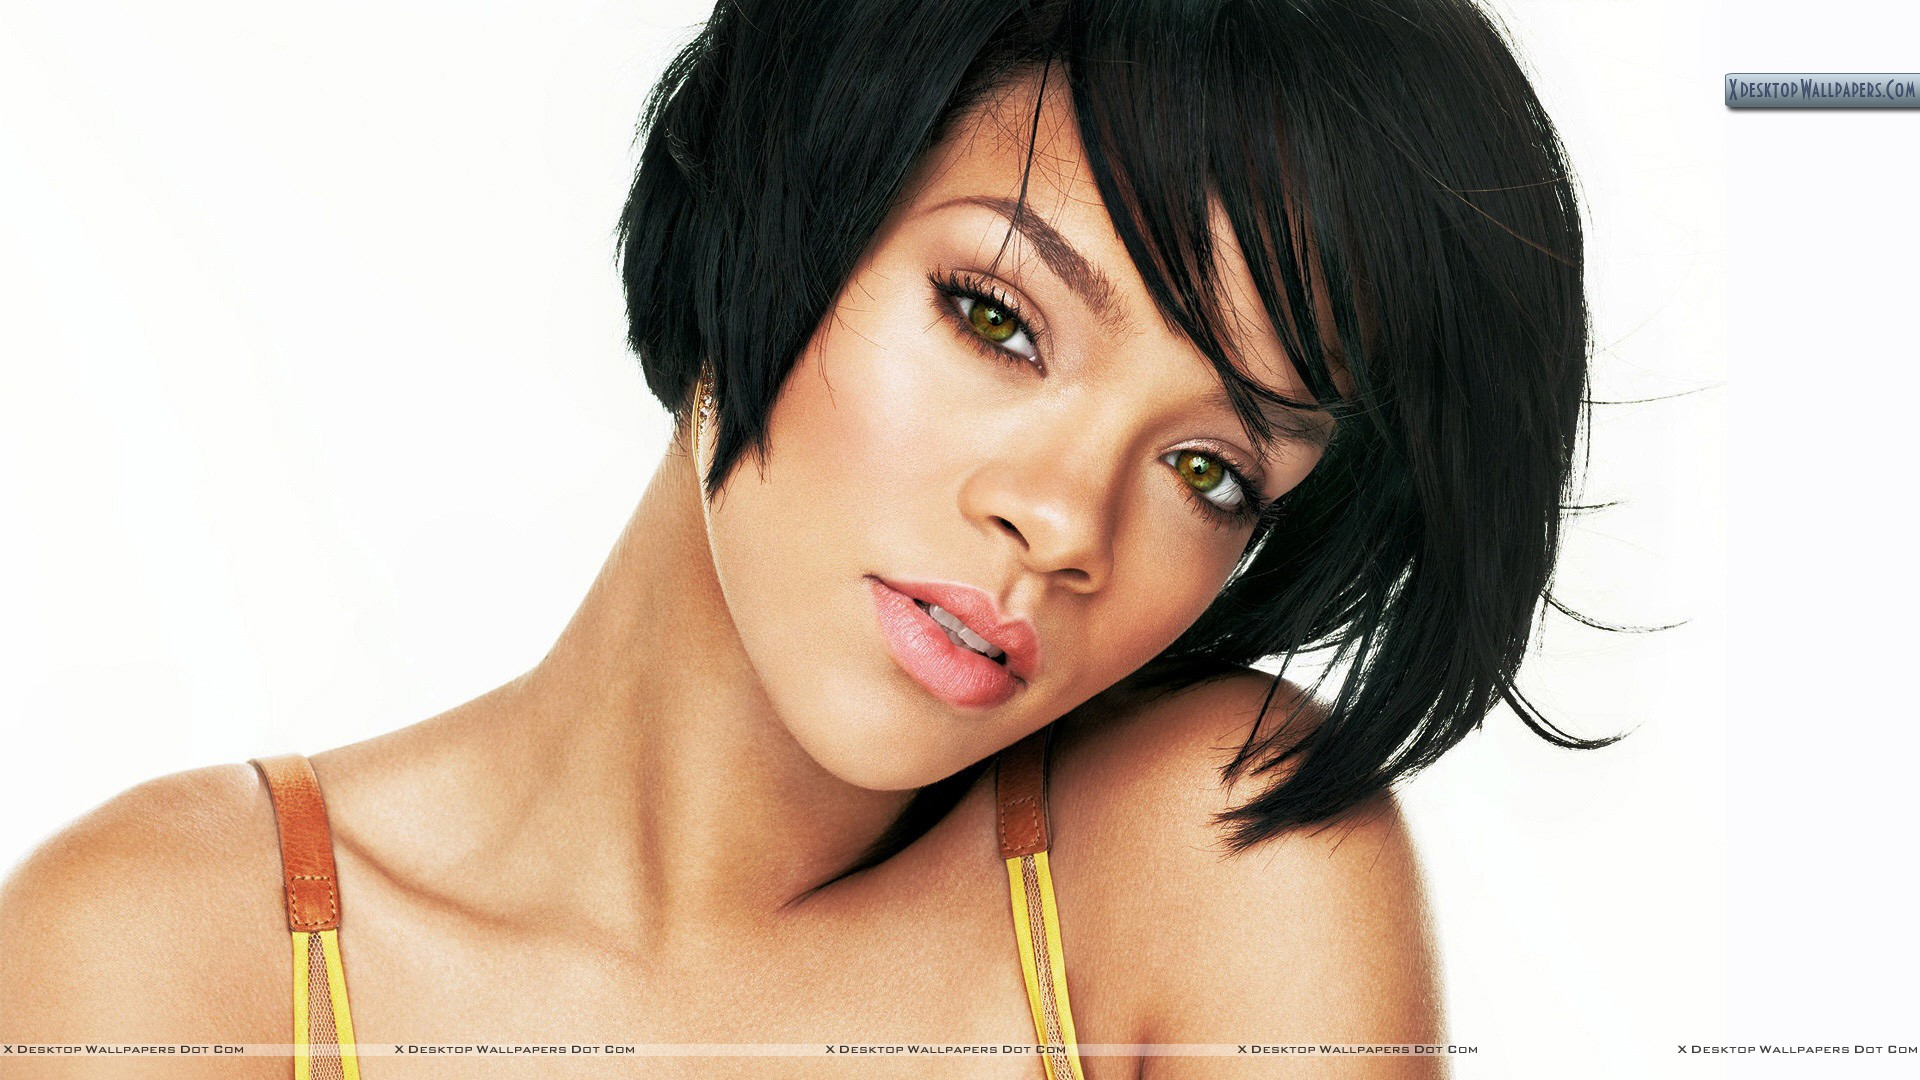 rihanna wallpapers, photos & images in hd